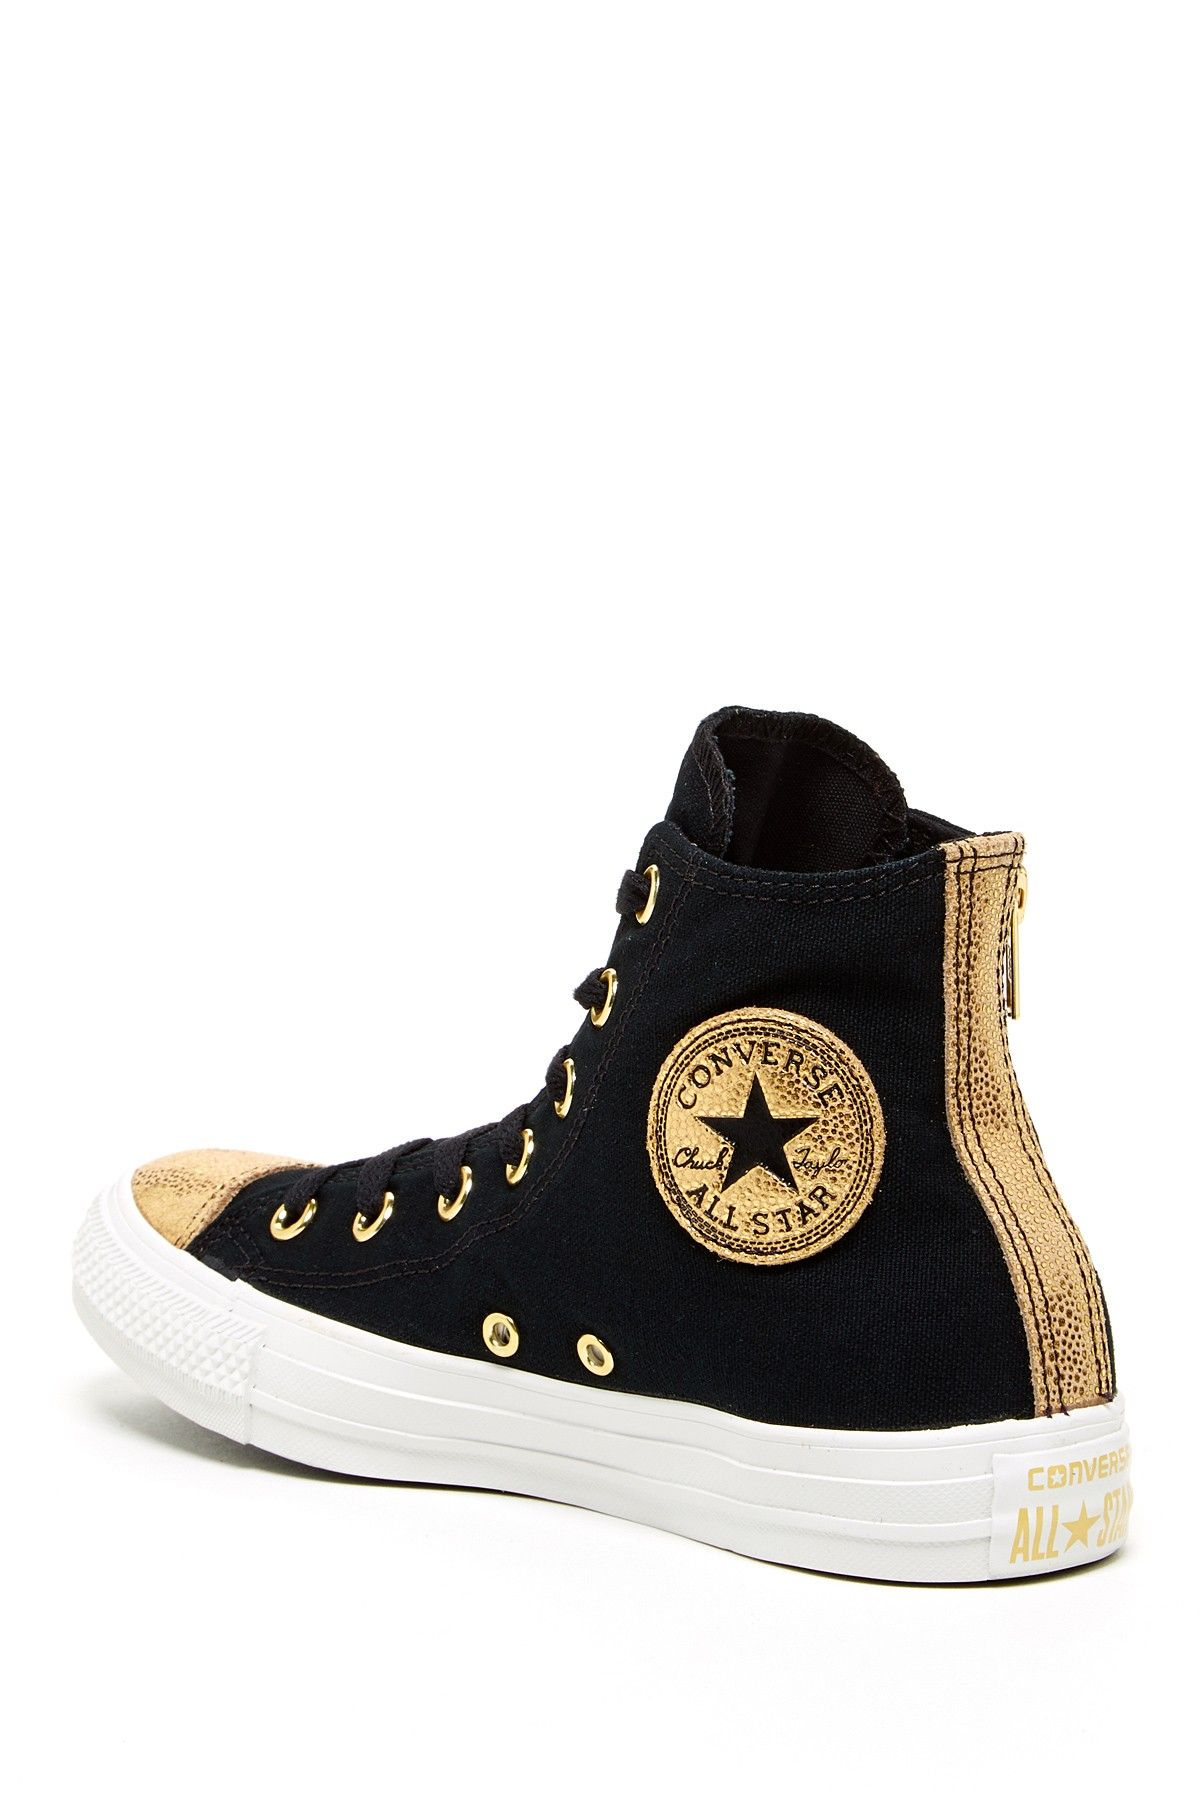 b7cd0b48932d88 Chuck Taylor Side Zip High Top Sneaker by Converse on  nordstrom rack